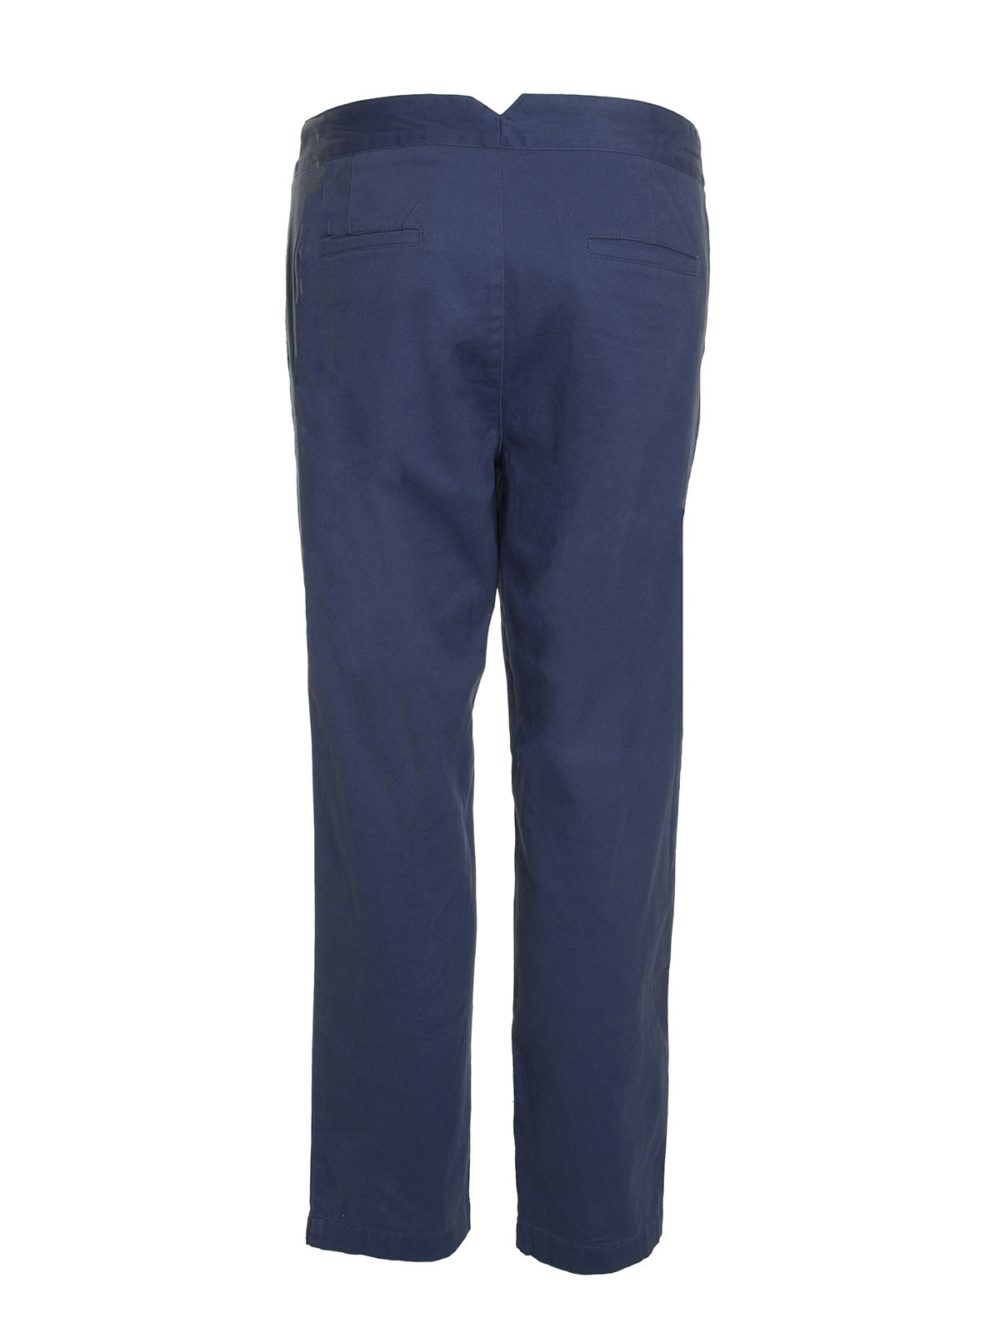 Sheng Slack Trousers Thought Clothing Katie Kerr Women's Clothing